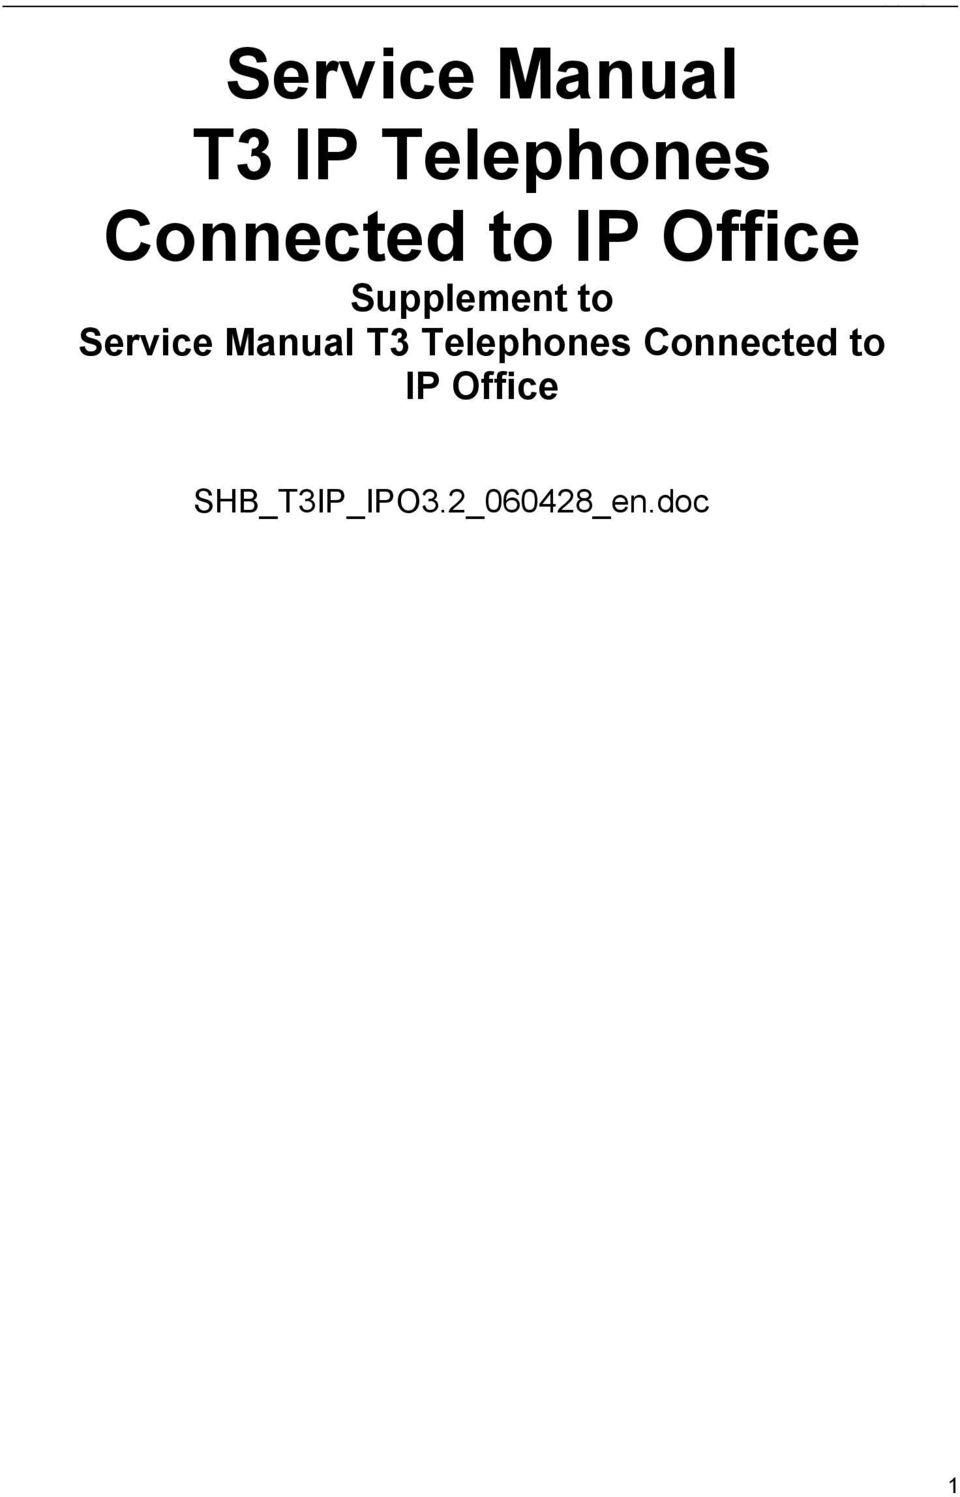 Service Manual T3 Telephones Connected